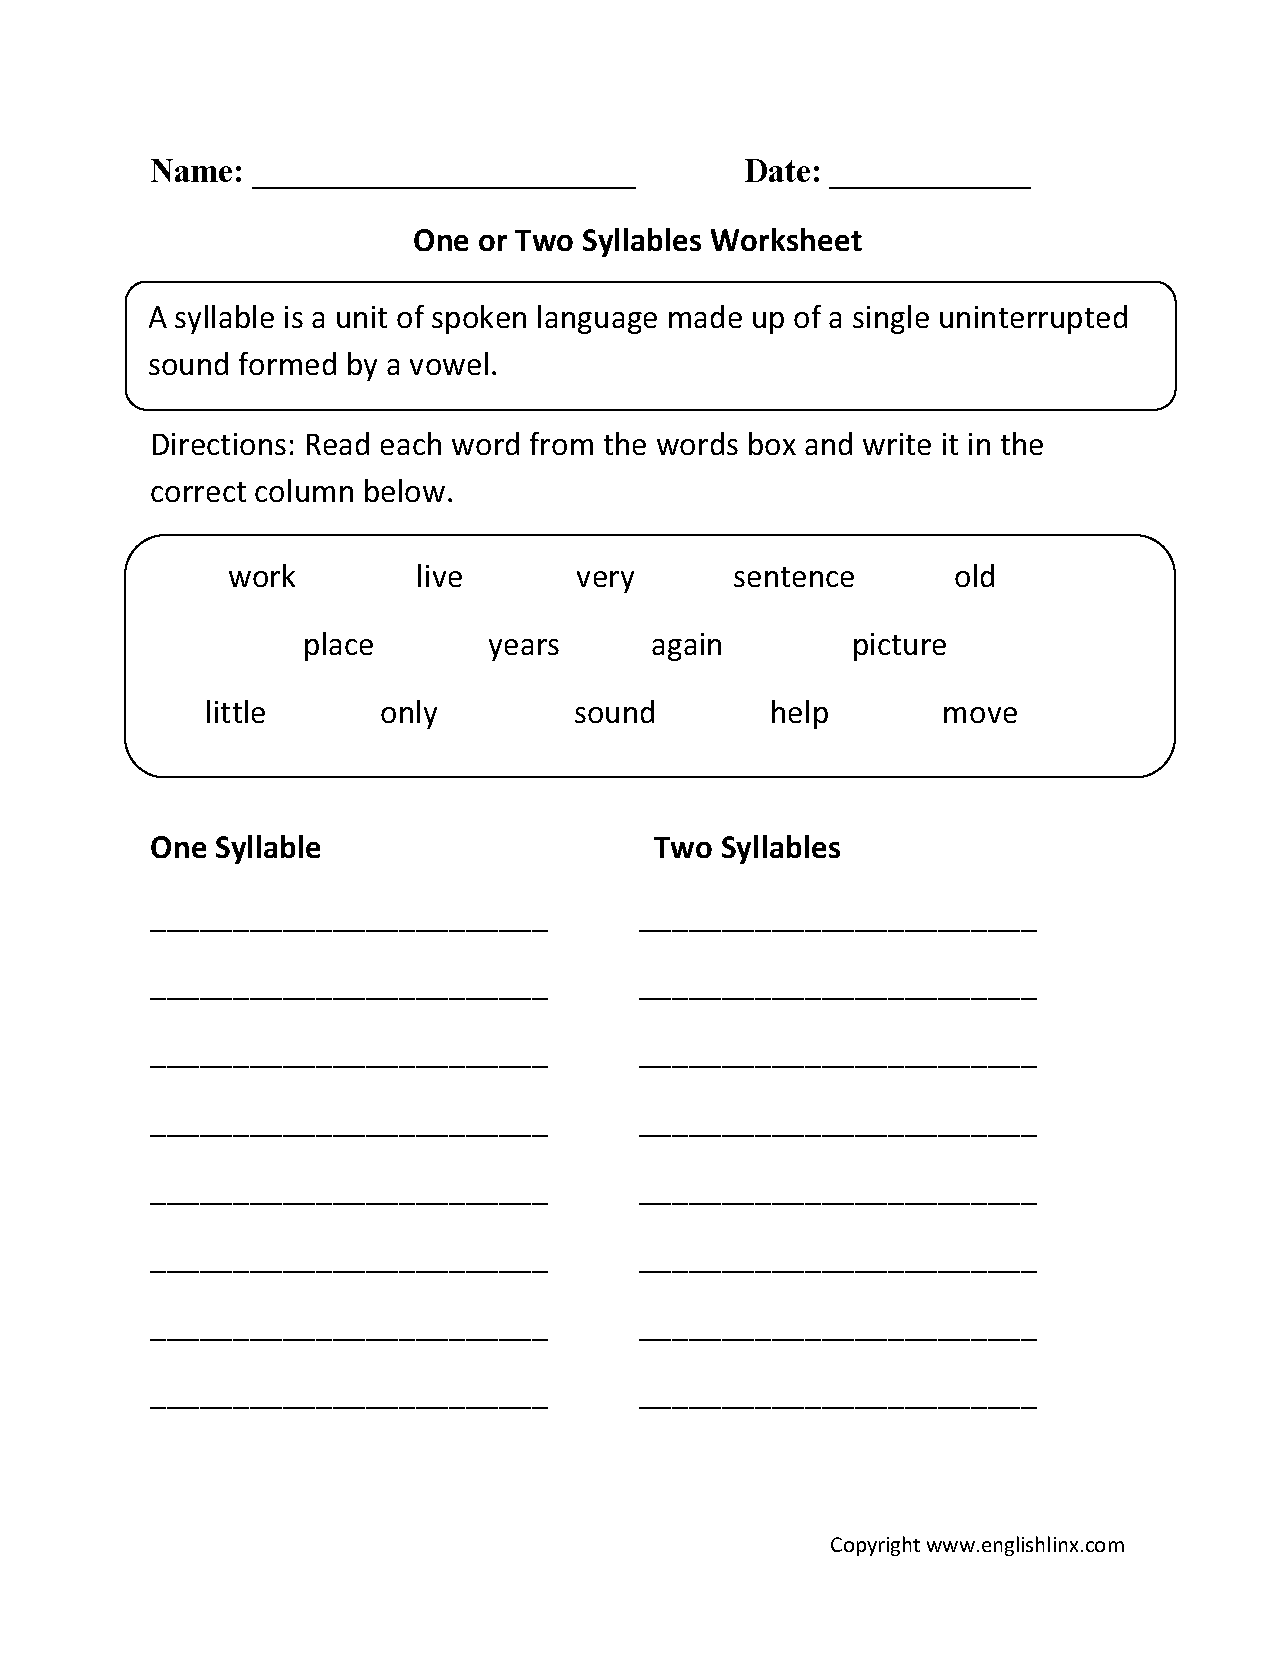 Aldiablosus  Gorgeous Englishlinxcom  Syllables Worksheets With Excellent Syllables Worksheets With Appealing Sentence Practice Worksheets Also Finding Surface Area Worksheets In Addition Algebra  Solving Equations Worksheet And Correct The Sentence Worksheets As Well As Gay Lussac Law Worksheet Additionally Algebra  Worksheets For Th Grade From Englishlinxcom With Aldiablosus  Excellent Englishlinxcom  Syllables Worksheets With Appealing Syllables Worksheets And Gorgeous Sentence Practice Worksheets Also Finding Surface Area Worksheets In Addition Algebra  Solving Equations Worksheet From Englishlinxcom